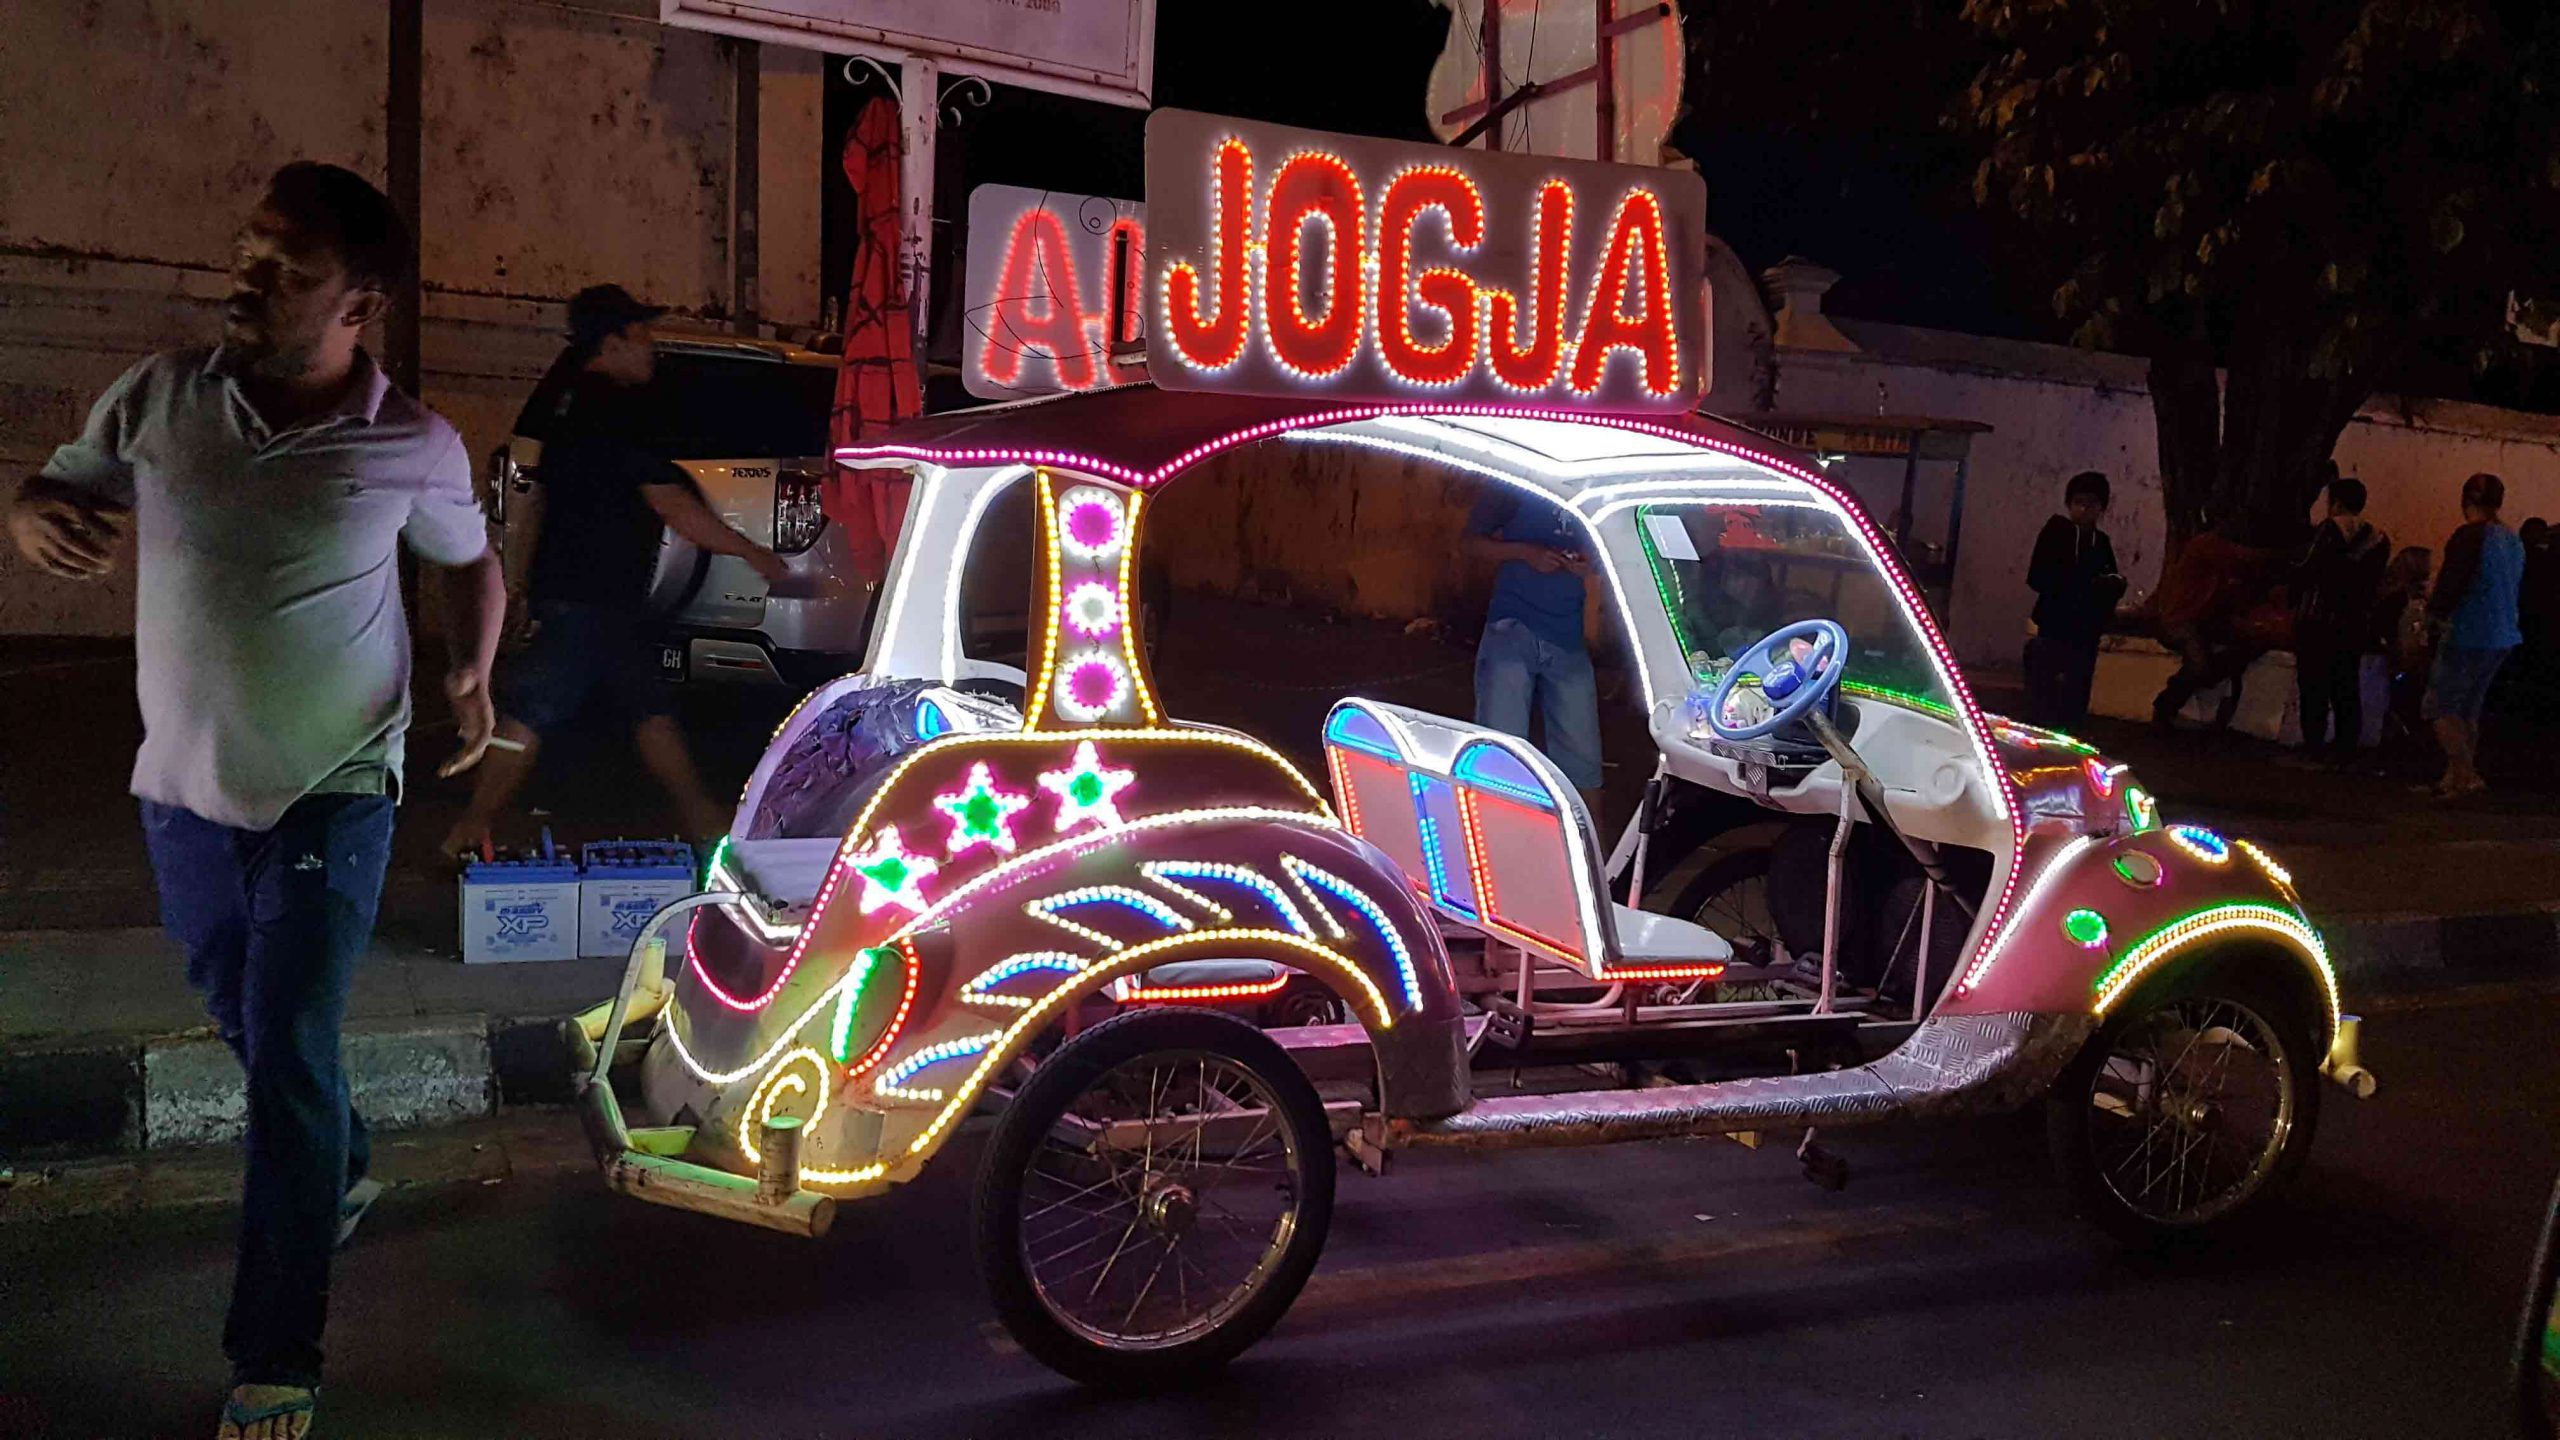 An motorized buggy decked in lights with additional seats and an illuminated JOGJA sign on the roof